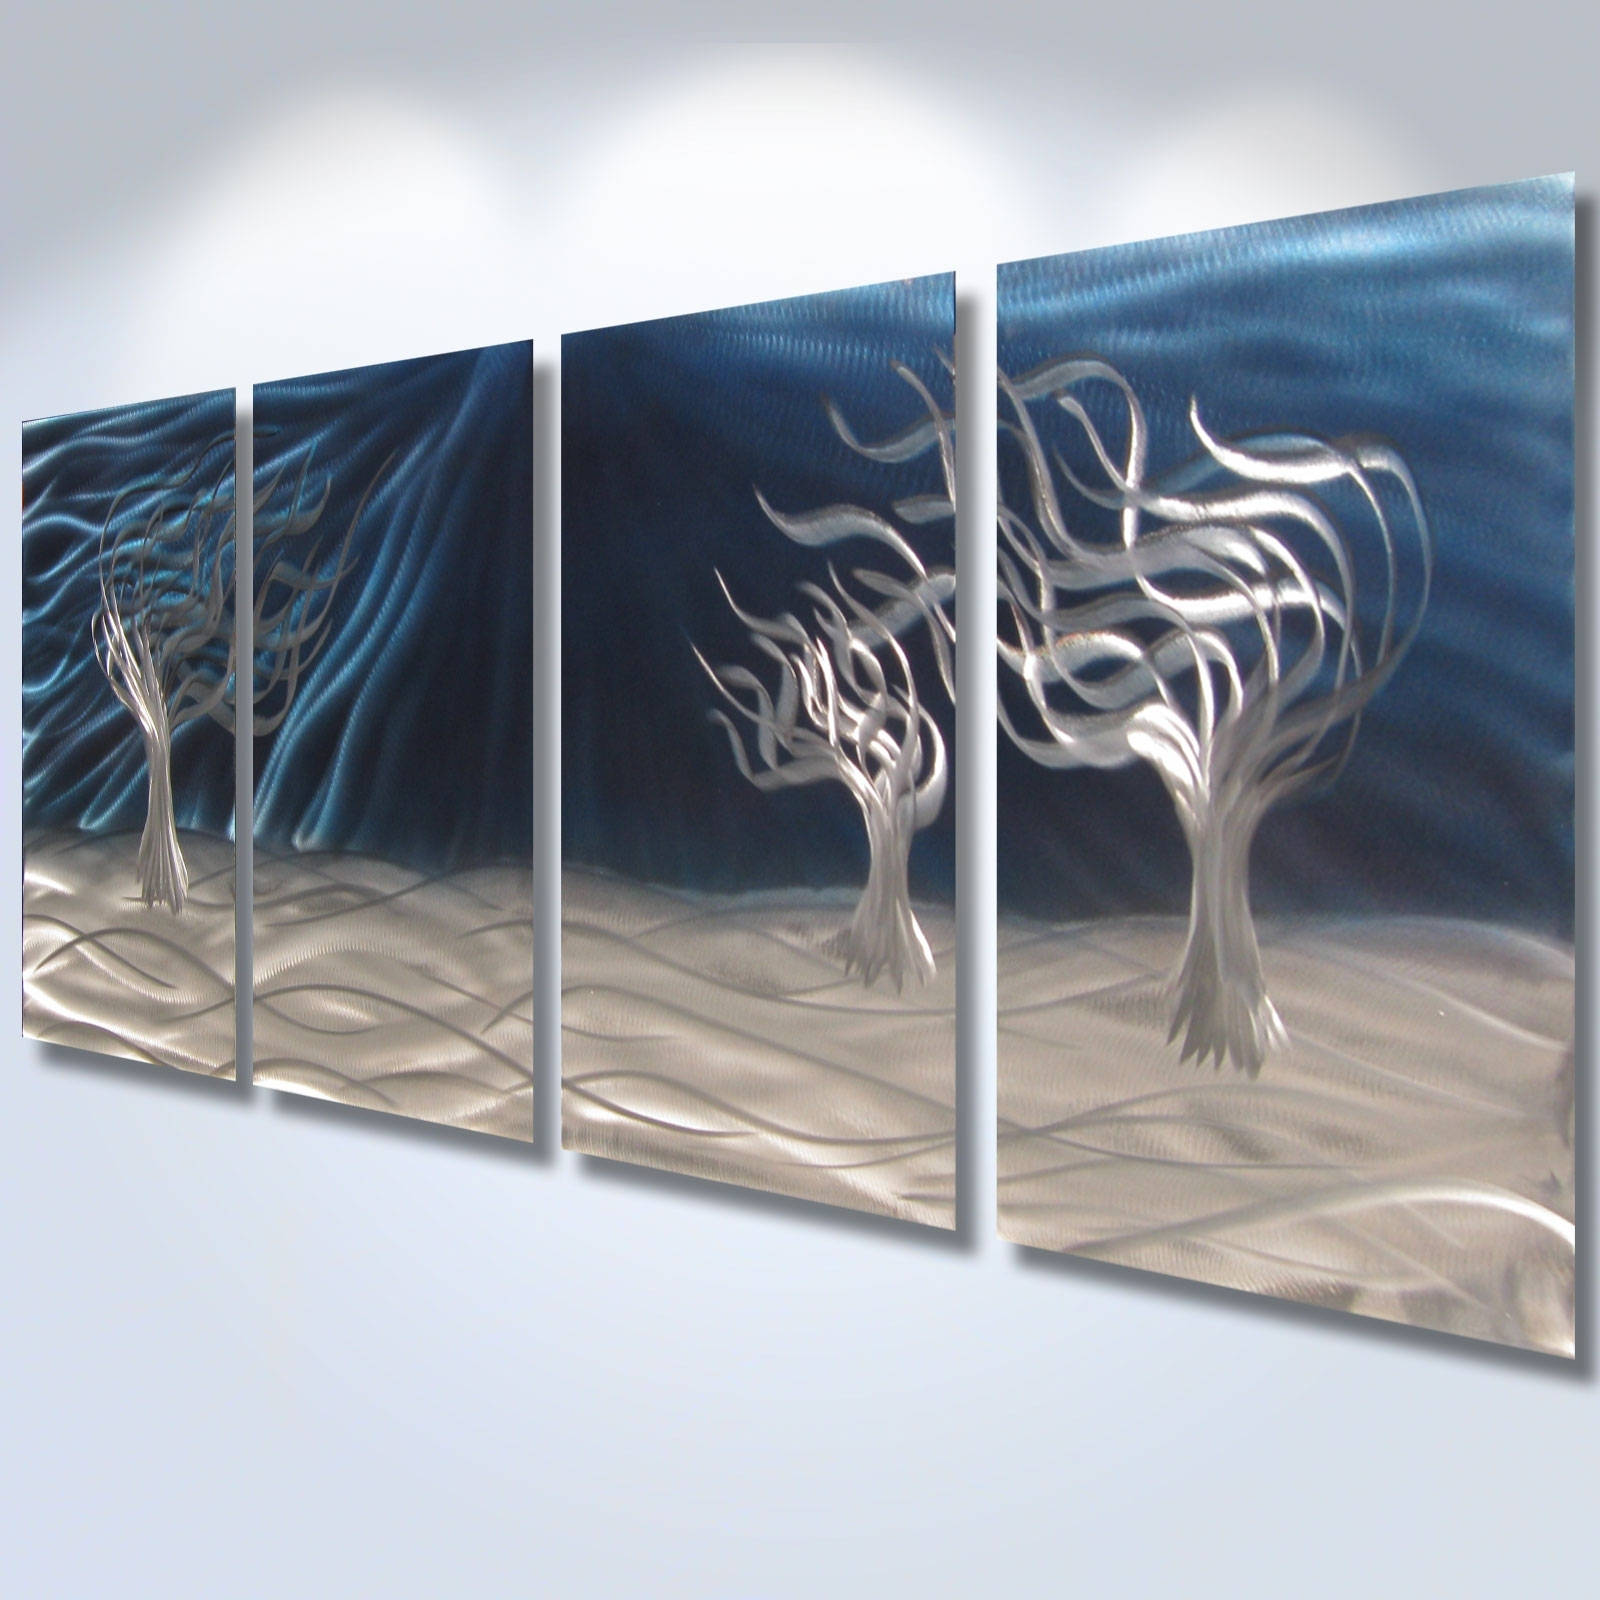 3 Trees Blue – Abstract Metal Wall Art Contemporary Modern Decor Throughout Most Popular Abstract Metal Sculpture Wall Art (View 12 of 20)